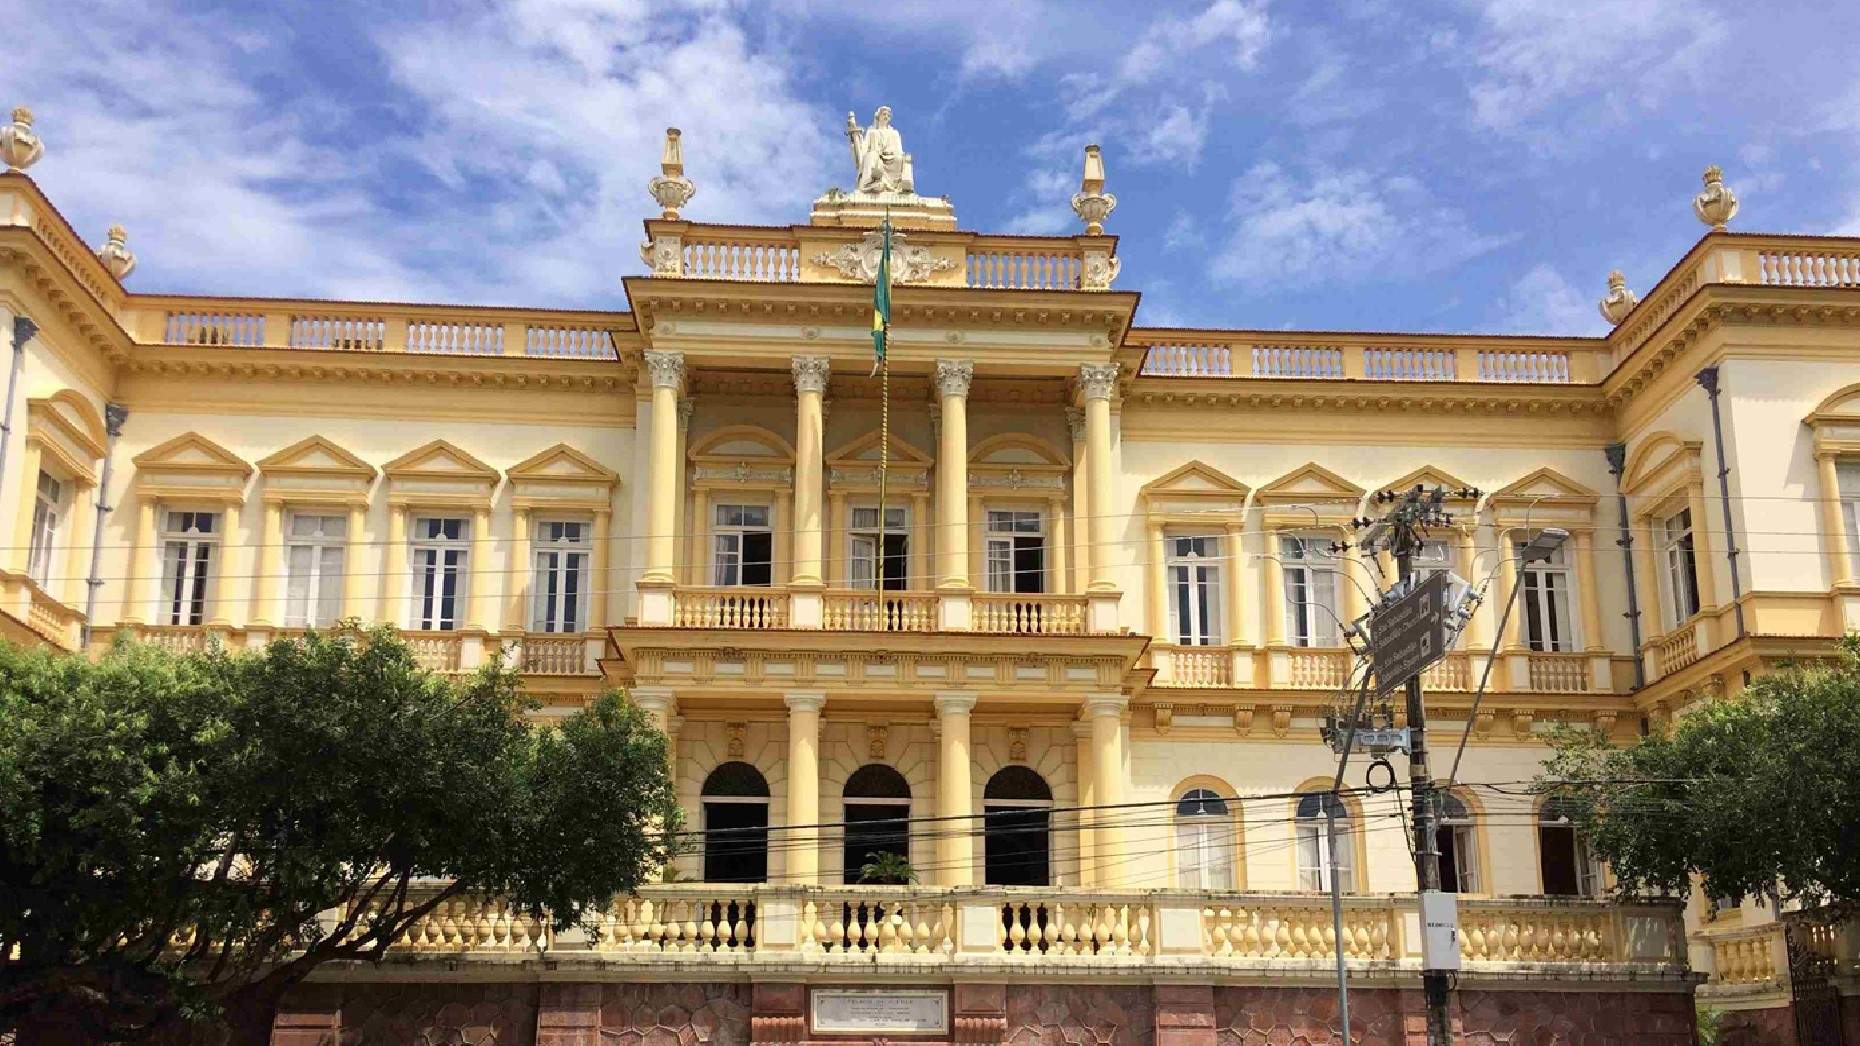 Tourist Attractions in Manaus: Built in the 19th century specifically to serve the facilities of the Judiciary of the State of Amazonas at the time, the Palace of Justice is located on Avenida Eduardo Ribeiro, facing the Teatro Amazonas.